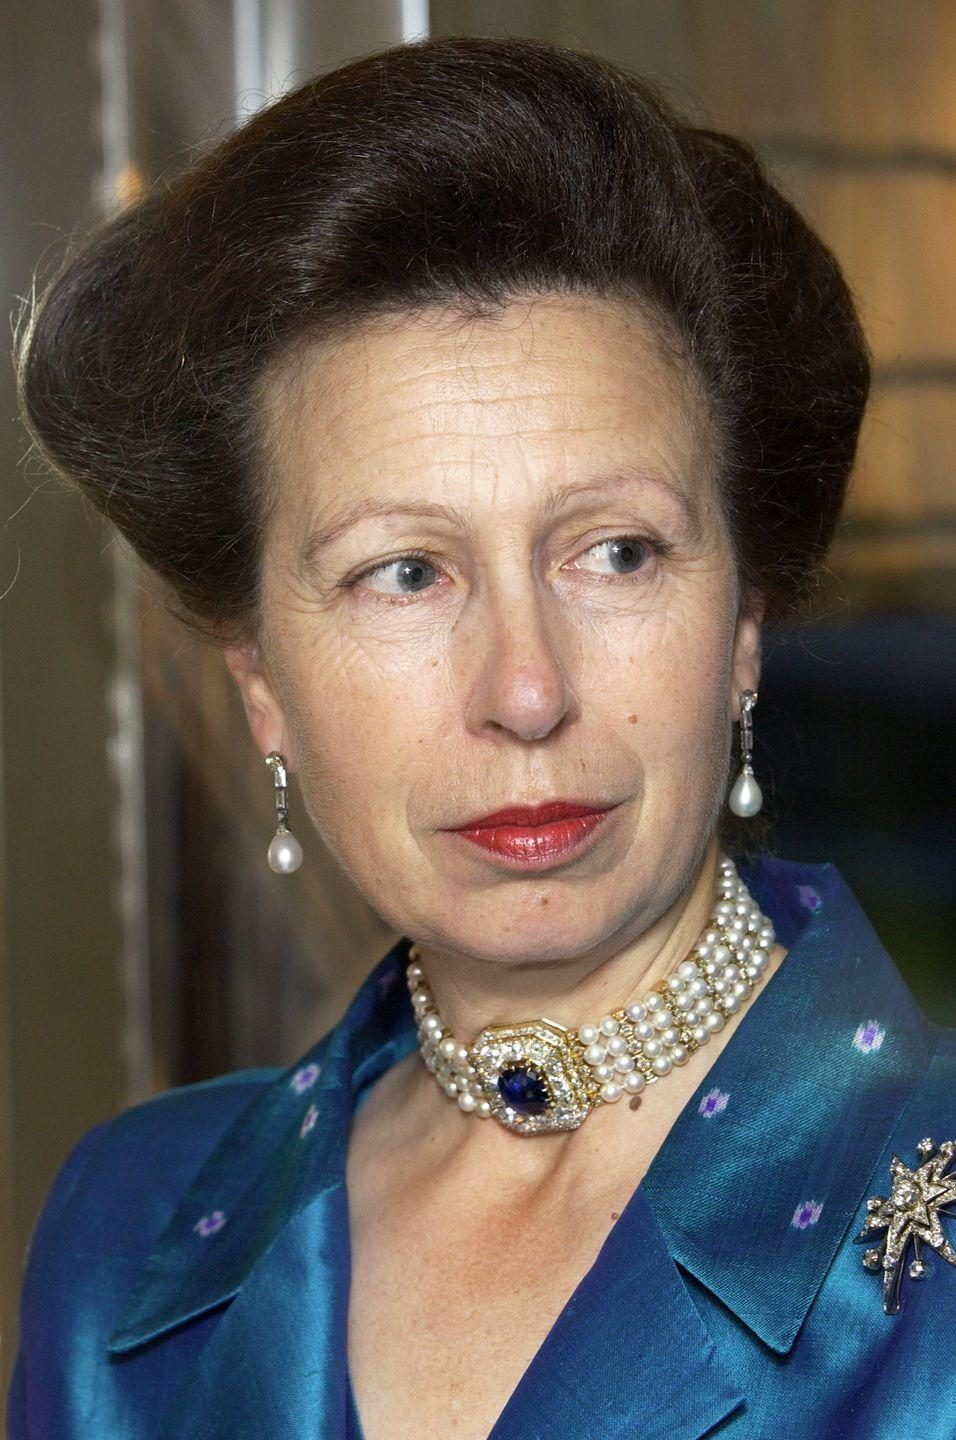 <p>Princess Anne's sapphire, diamond, and pearl choker was one of the many pieces from Russian Empress Marie Feodorovna's collection that Queen Mary later purchased. In 1953, Queen Elizabeth inherited the jewels from this cache, but as she rarely wears chokers, it is believed she passed this down to her daughter, either as a gift or longtime loan. The necklace can be taken apart to become a pair of bracelets, while the centerpiece turns into a brooch.</p>